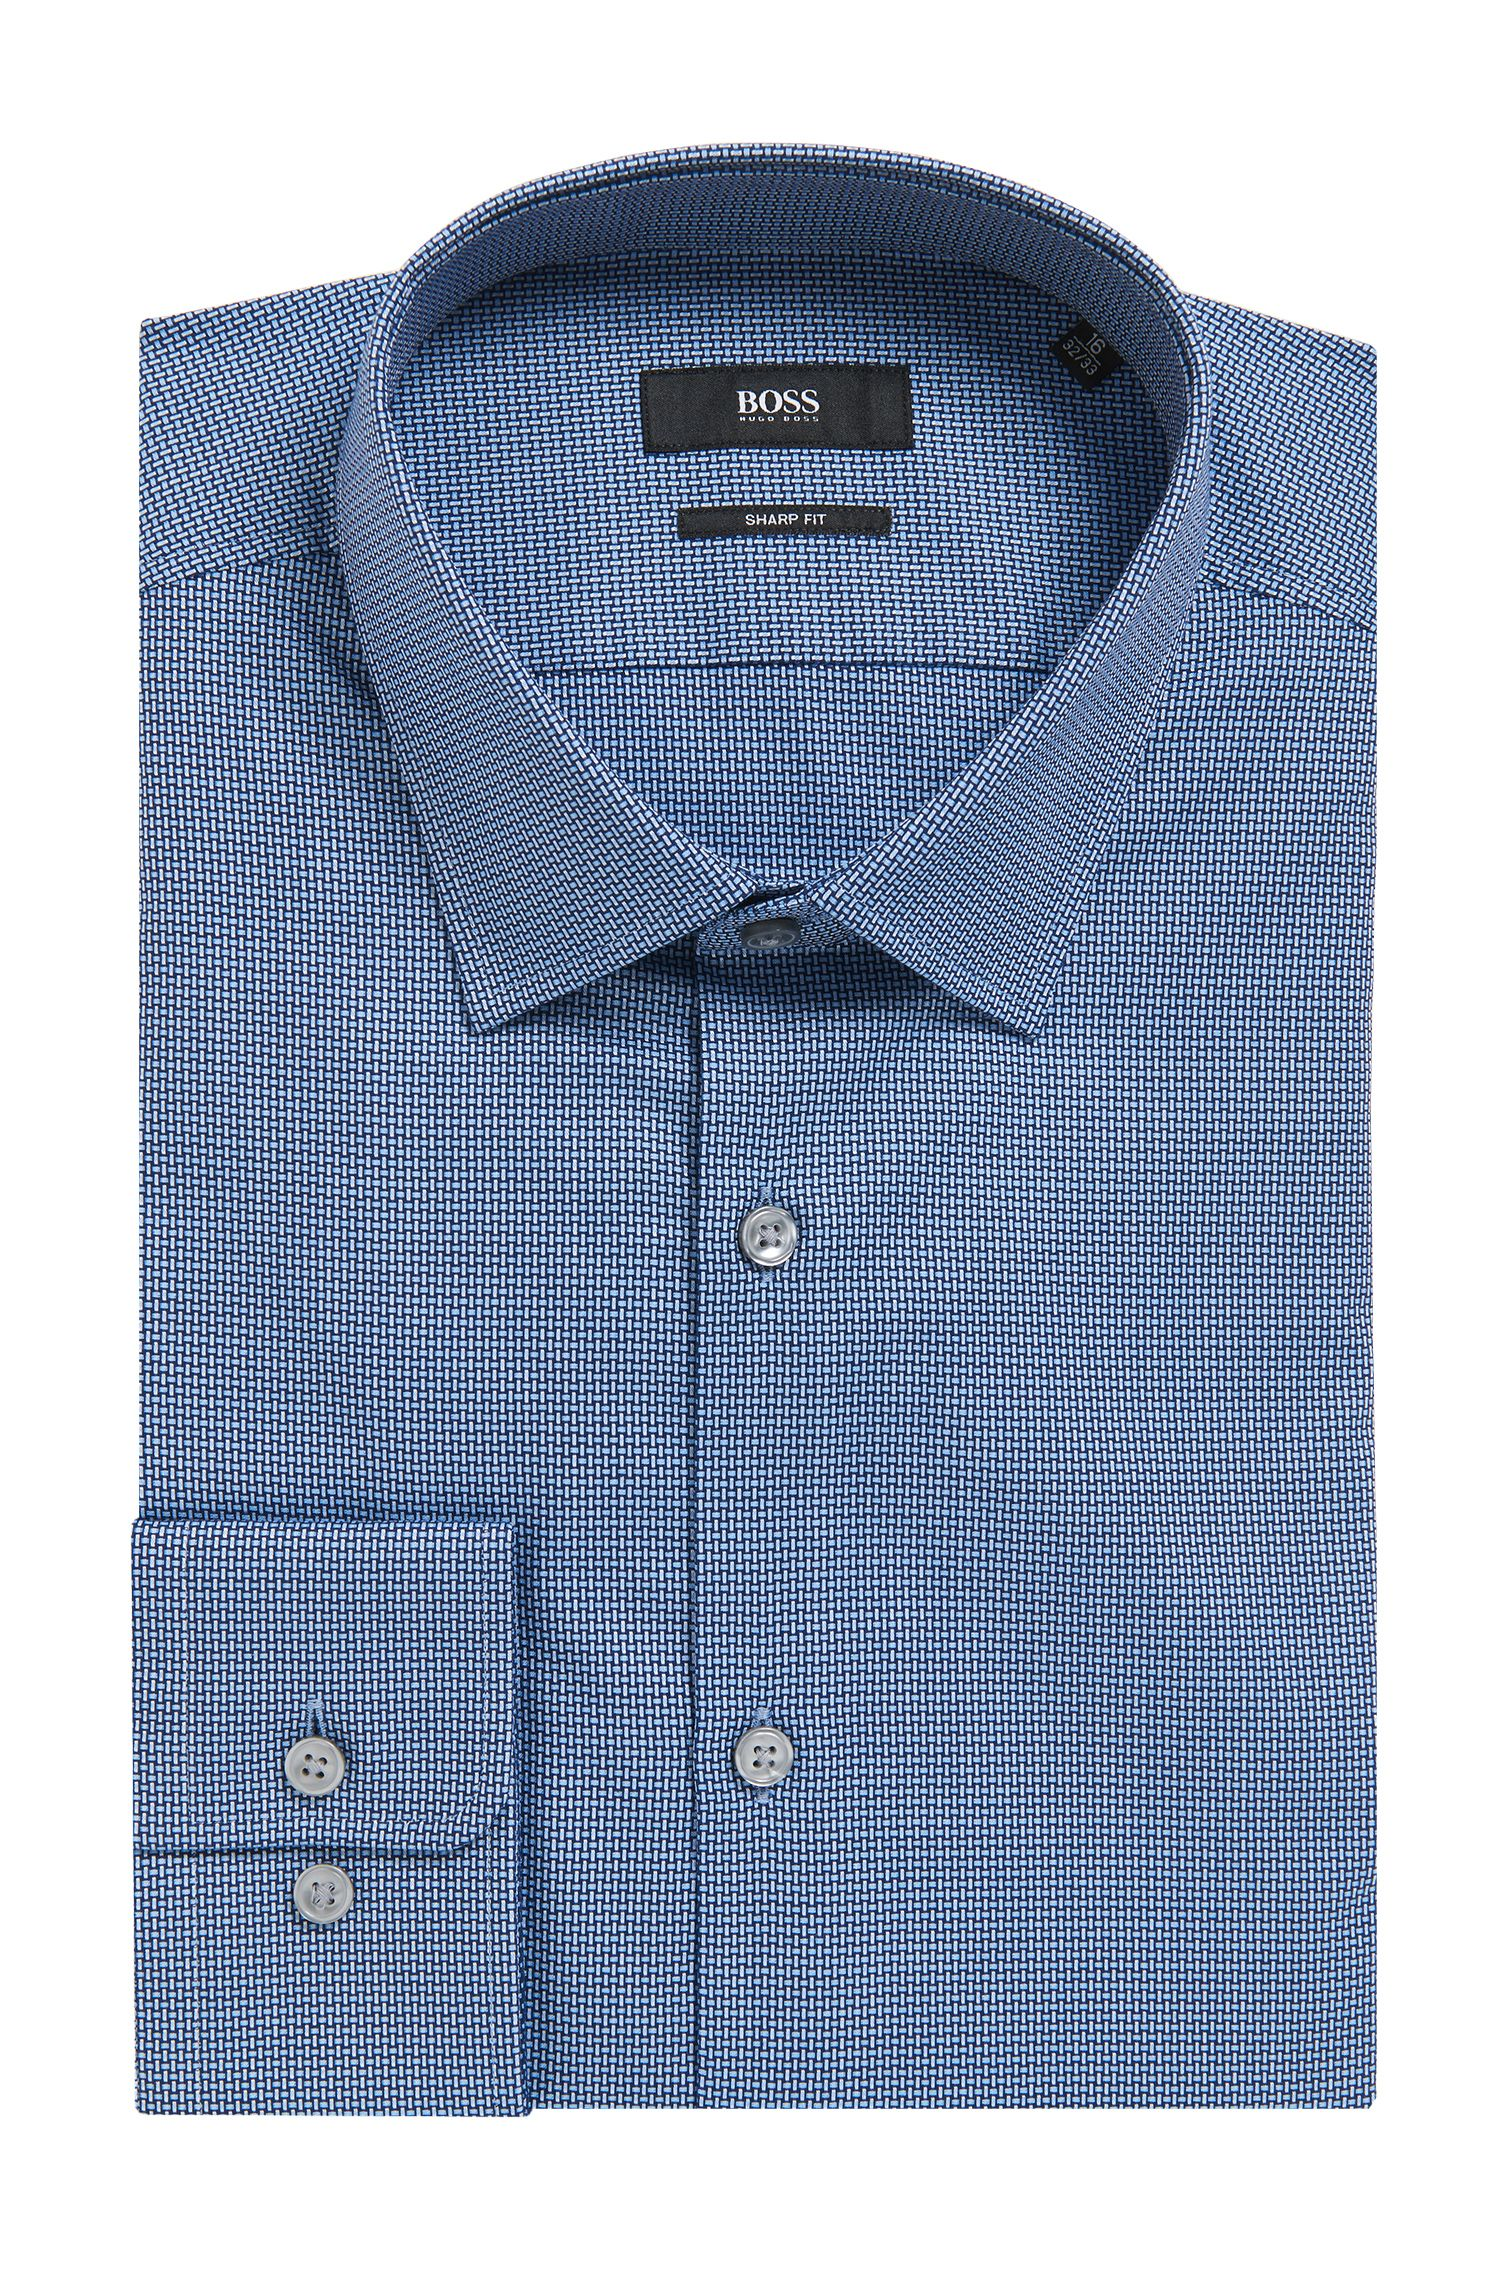 Geometric Cotton Dress Shirt, Sharp Fit | Marley US